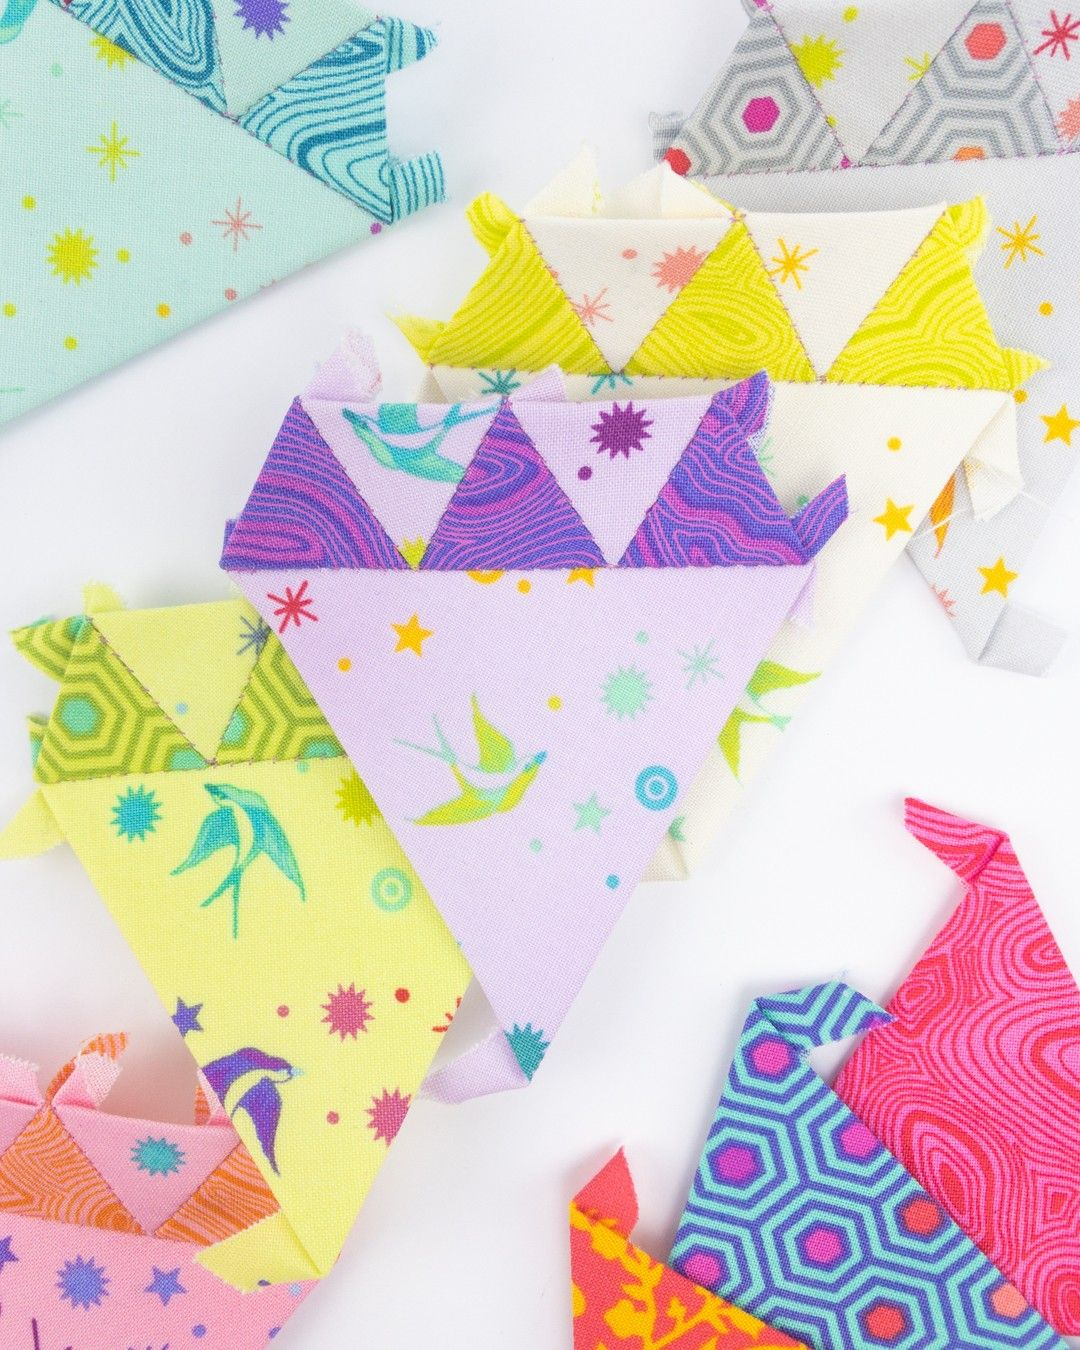 Tula Pink Quilty Box : quilty, Inspired, Pink,, We're, Bringing, Brand, Never, Before, Pattern, Using, Colors, Charm, Squa…, Spirit, Fabrics,